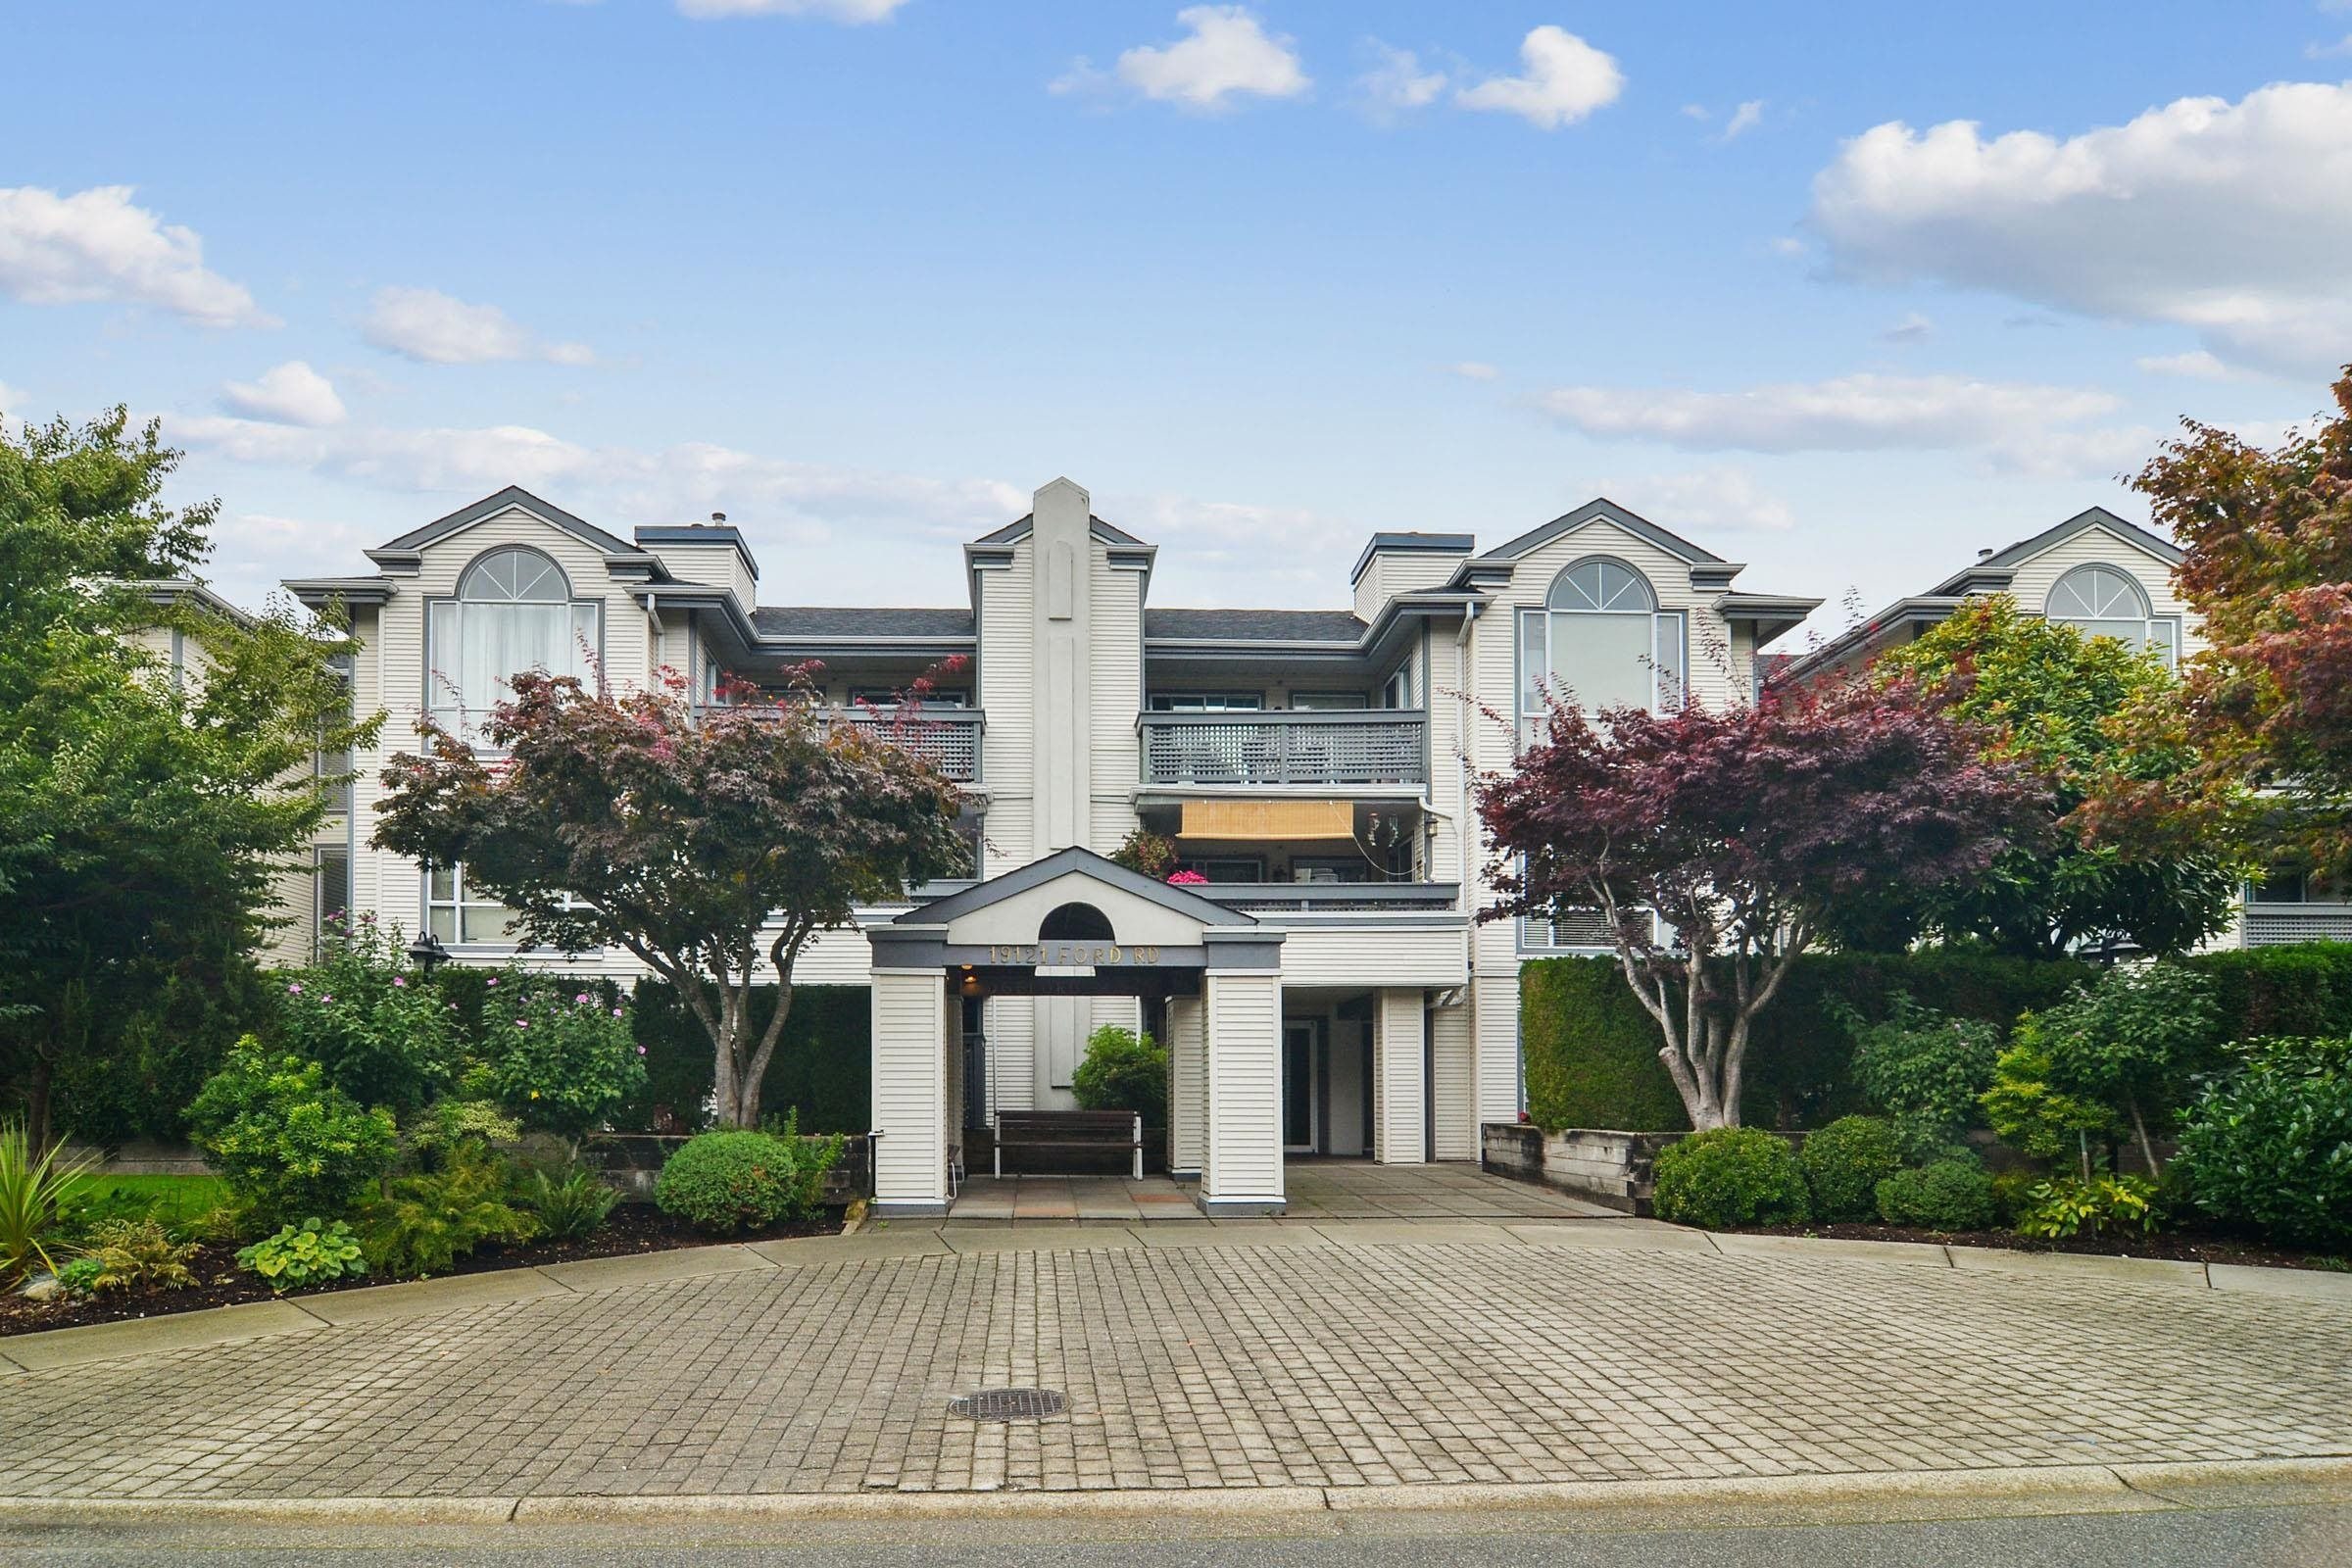 """Main Photo: 304 19121 FORD Road in Pitt Meadows: Central Meadows Condo for sale in """"Edgeford Manor"""" : MLS®# R2620750"""